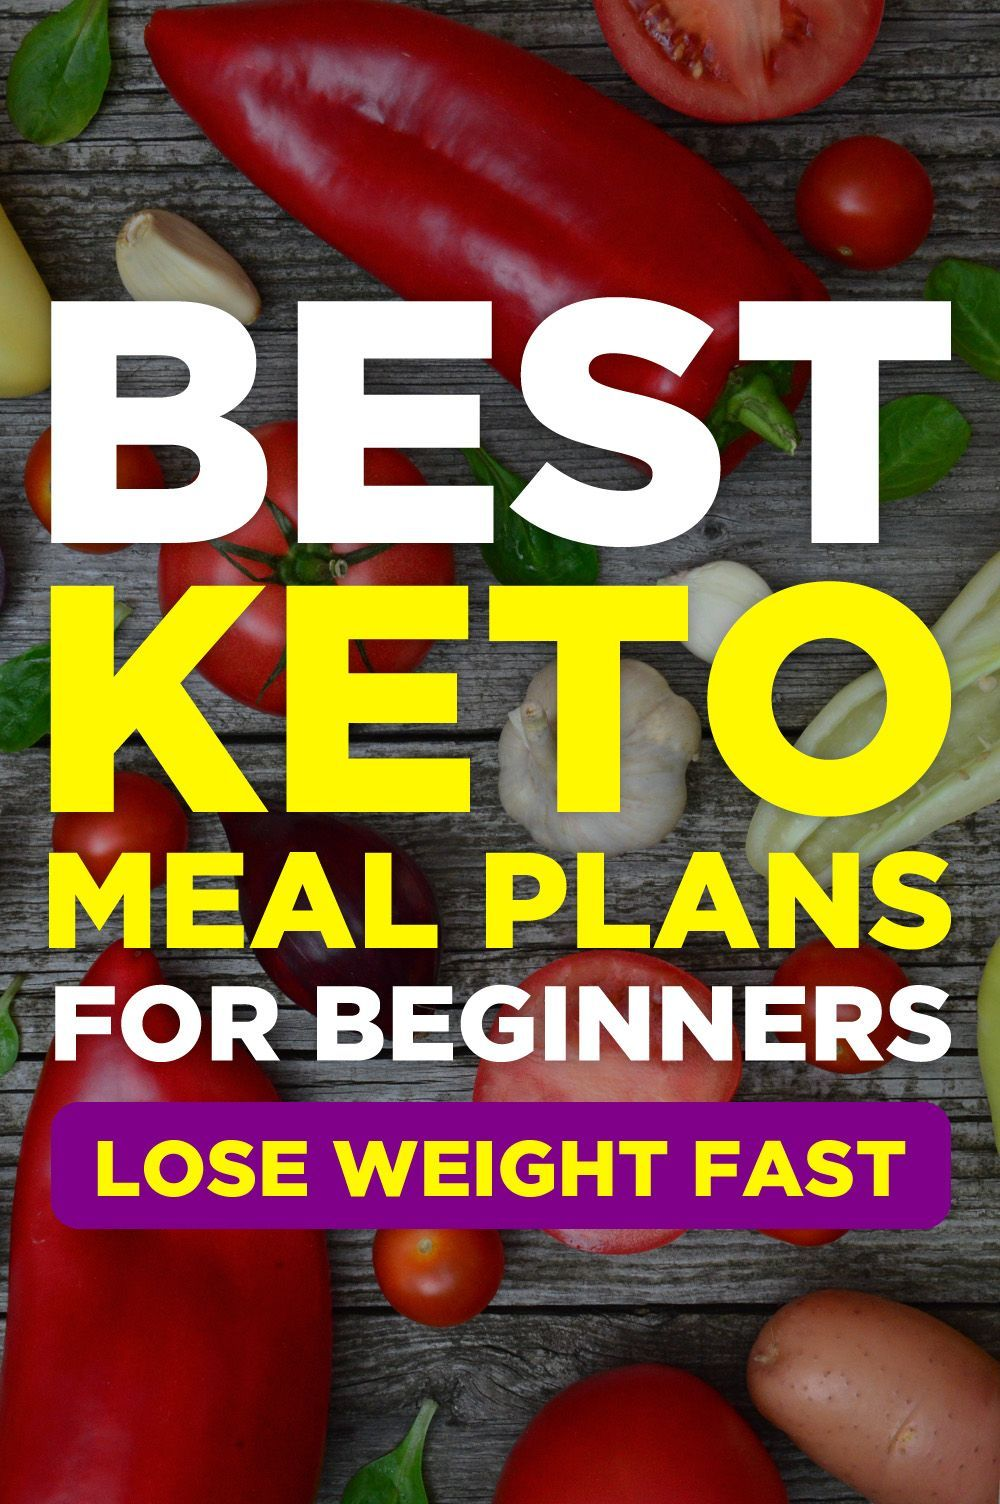 Lose Weight Fast, is keto diet bad, 	fit weight, 	keto diet easy recipes,  #myfitnesspalrecipes is keto diet bad, 	fit weight, 	keto diet easy recipes,  keto dishes, 	cleaning diet, 	gym workouts to lose weight,  low fat diet for high cholesterol, 	ruled me ketogenic diet, 	weight loss for beginners,  eat healthy foods, 	keto diet milk, 	keto diet 101,  modified paleo diet, 	myfitnesspal recipes, 	recipes foods,  ketogenic diet recipes, 	lose weight for good, 	healthy diets to lose weight,  keto #myfitnesspalrecipes